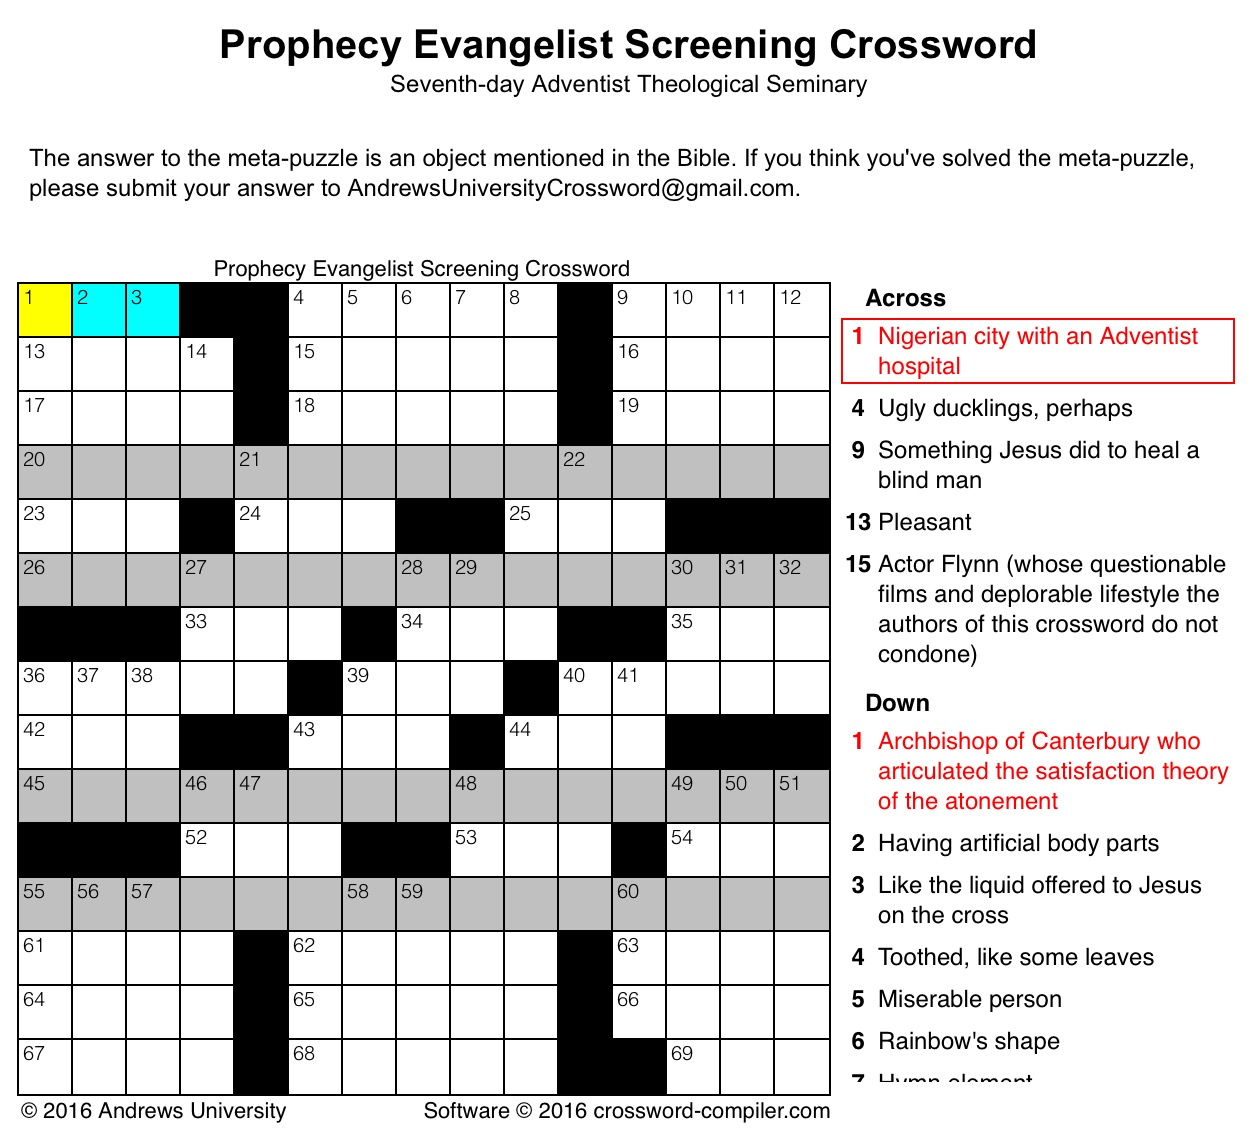 Andrews seminary to identify potential prophecy evangelists with this crossword